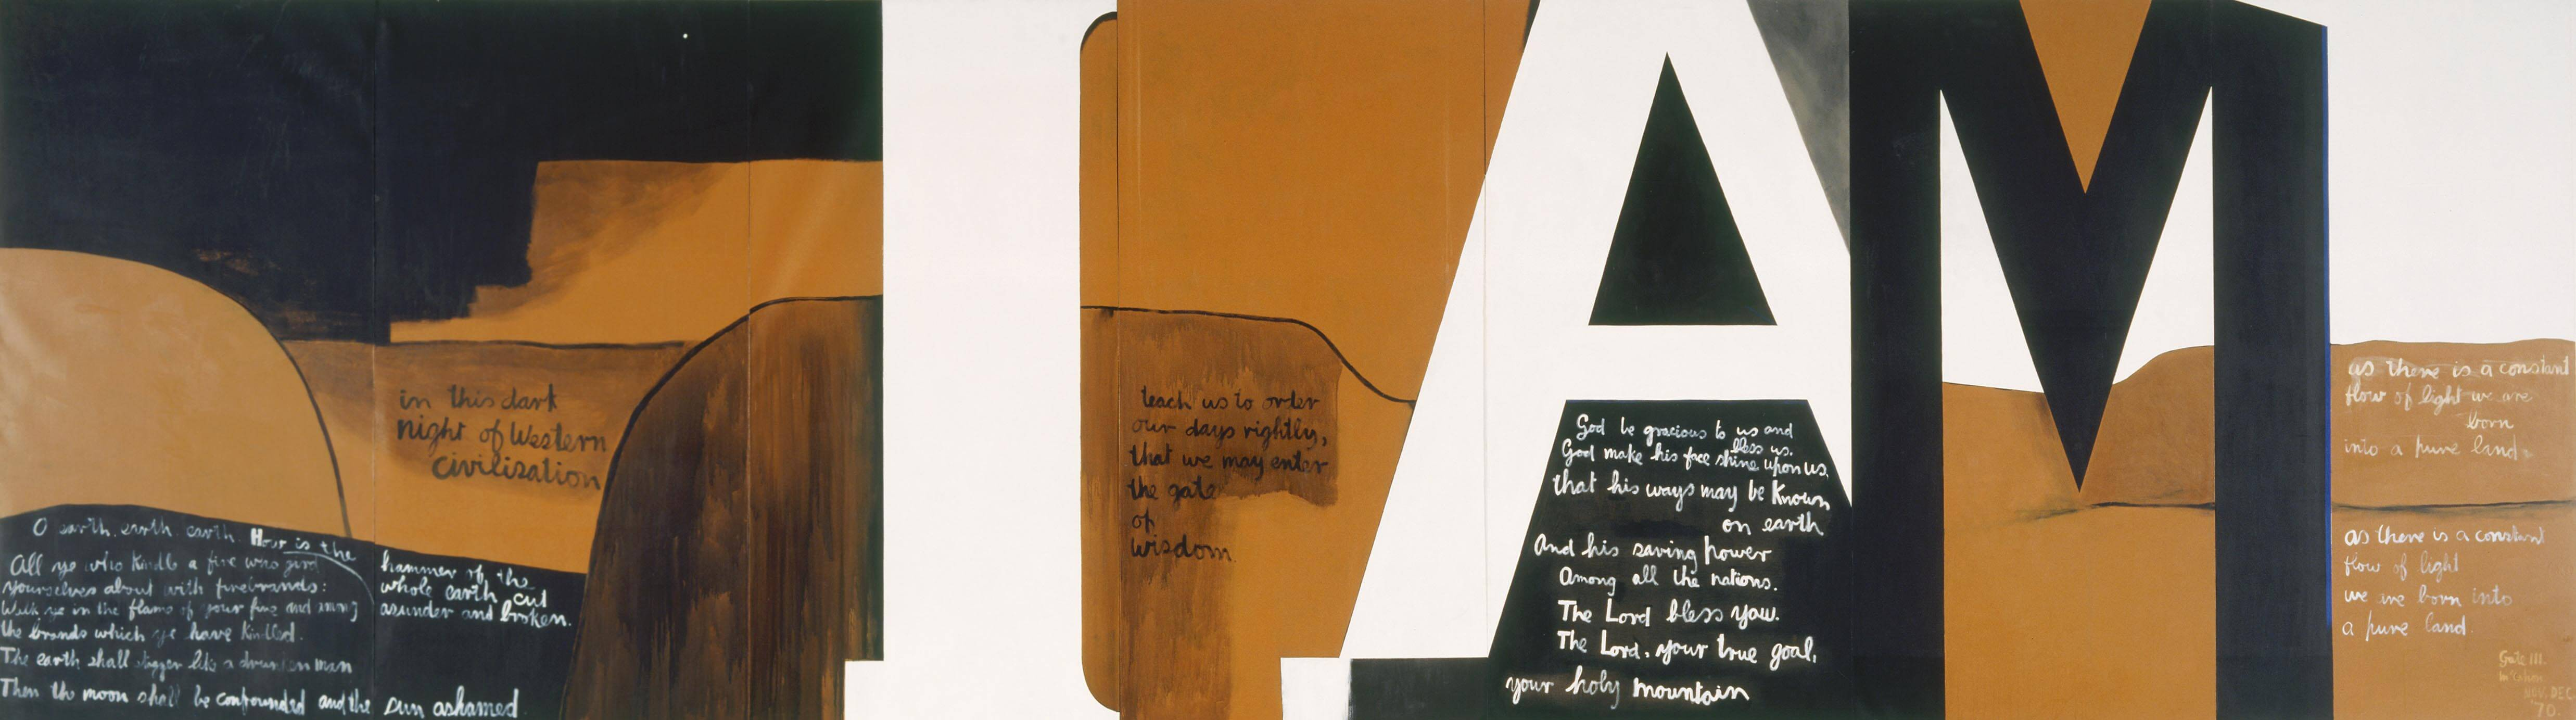 victoria university art history colin mccahon 1919 1987 gate iii 1970 acrylic on canvas